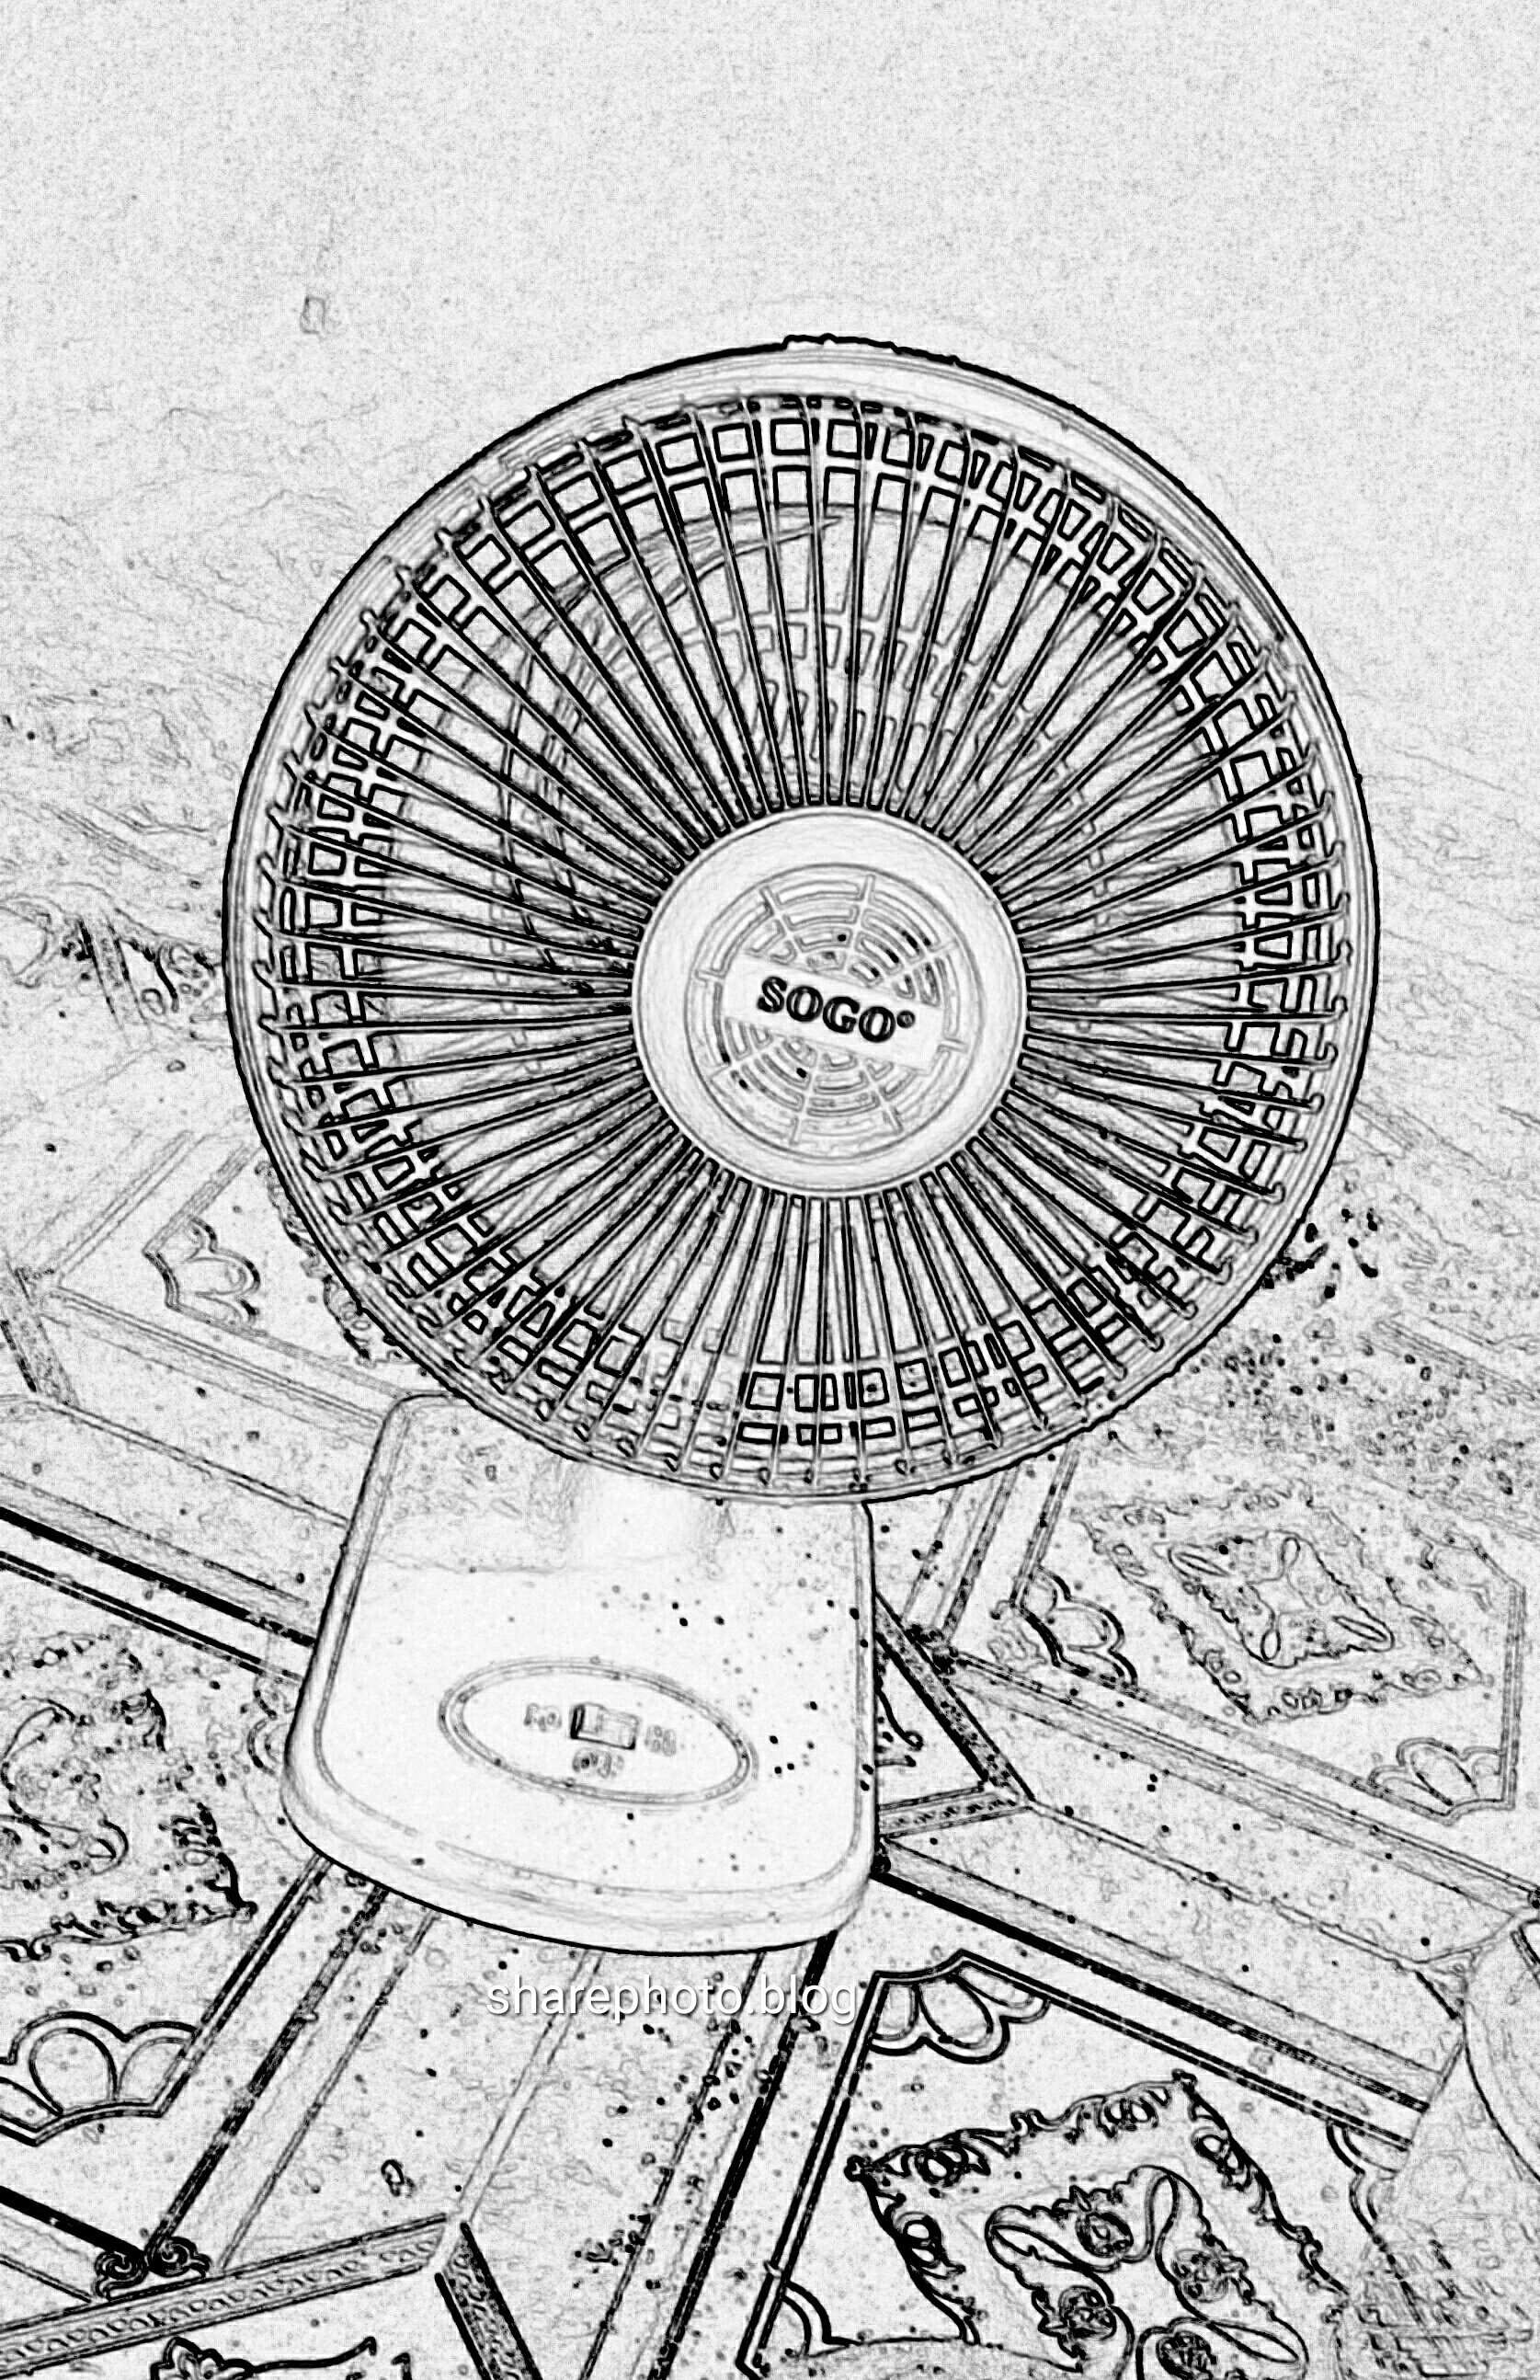 A Sketch Of A Electric Fan : Photo sketch electric fan sharephoto